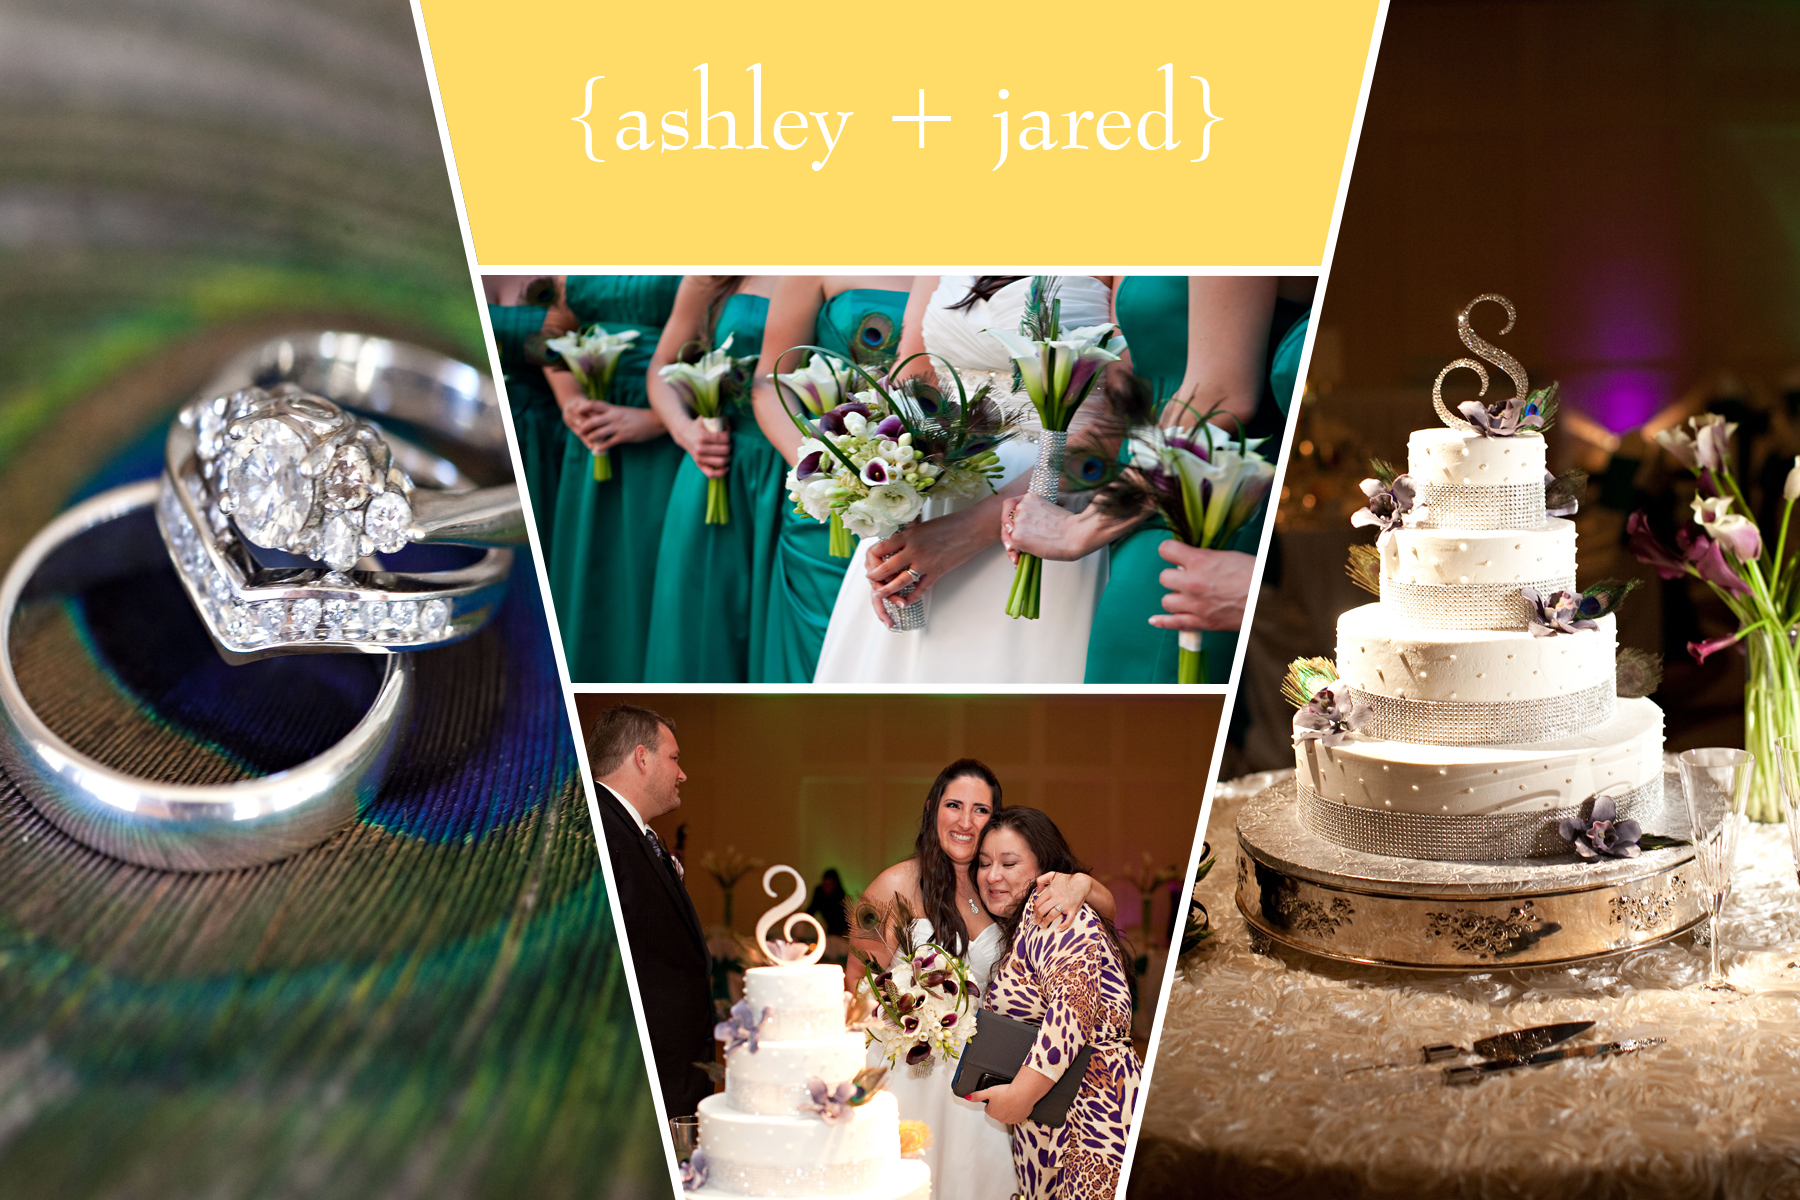 """Claudia is amazing at her job! She made all of my wedding dreams come true (and more). Originally, she was only going to provide bakery services as she is the preferred vendor for our reception venue. However, when my mom and I met with her, we fell in love. She convinced us to use her 'day of' coordinator services which proved to be worth every penny. We also decided to use her as our florist, as well, since it was so convenient to have everything in one place. Then my mom used her stationery services near the end, for the programs and table stationery, etc.  Everything was great! The cakes were gorgeous and tasty. The flowers were absolutely perfect and breath-taking. The stationary was uniquely designed for our wedding theme and colors and they were great! After all the meetings we had, Claudia took our wedding vision and turned it into reality. A perfect reality. It was the best day of my life!  The best thing that Claudia did for me (and, most of all, my mother) was take an enormous weight off our shoulders…not only in the planning process, but more importantly, on the wedding day. Not only was everything perfectly beautiful, but the event ran SO smoothly because of her planning and coordination efforts. If anything went wrong, I have no clue! If it weren't for Claudia, we wouldn't have been able to have such a successful event. That's the truth.  I'd recommend her to anyone of my friends or family members planning a wedding. She's got great connections in the industry, she's knowledgeable and she's such a pleasure to work with.""  —  Ashley and Jared, The Conrad Hilton Hotel"